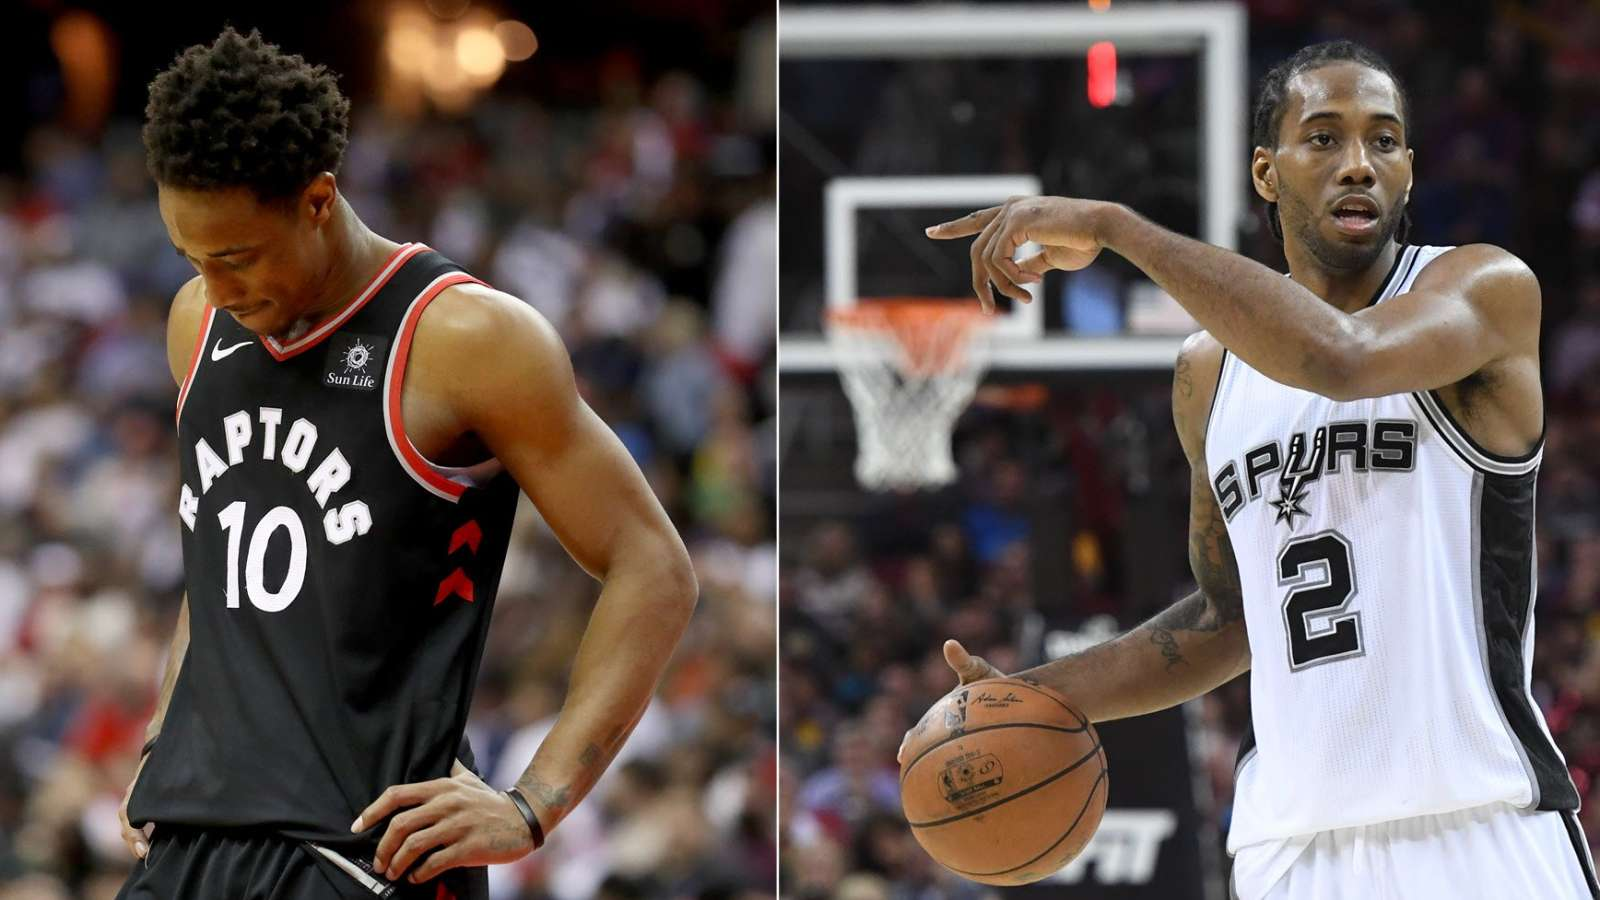 sports-kawhi-leonard-traded-to-the-raptors-for-demar-derozan-and-both-players-are-seemingly-not-happy-about-it.jpg